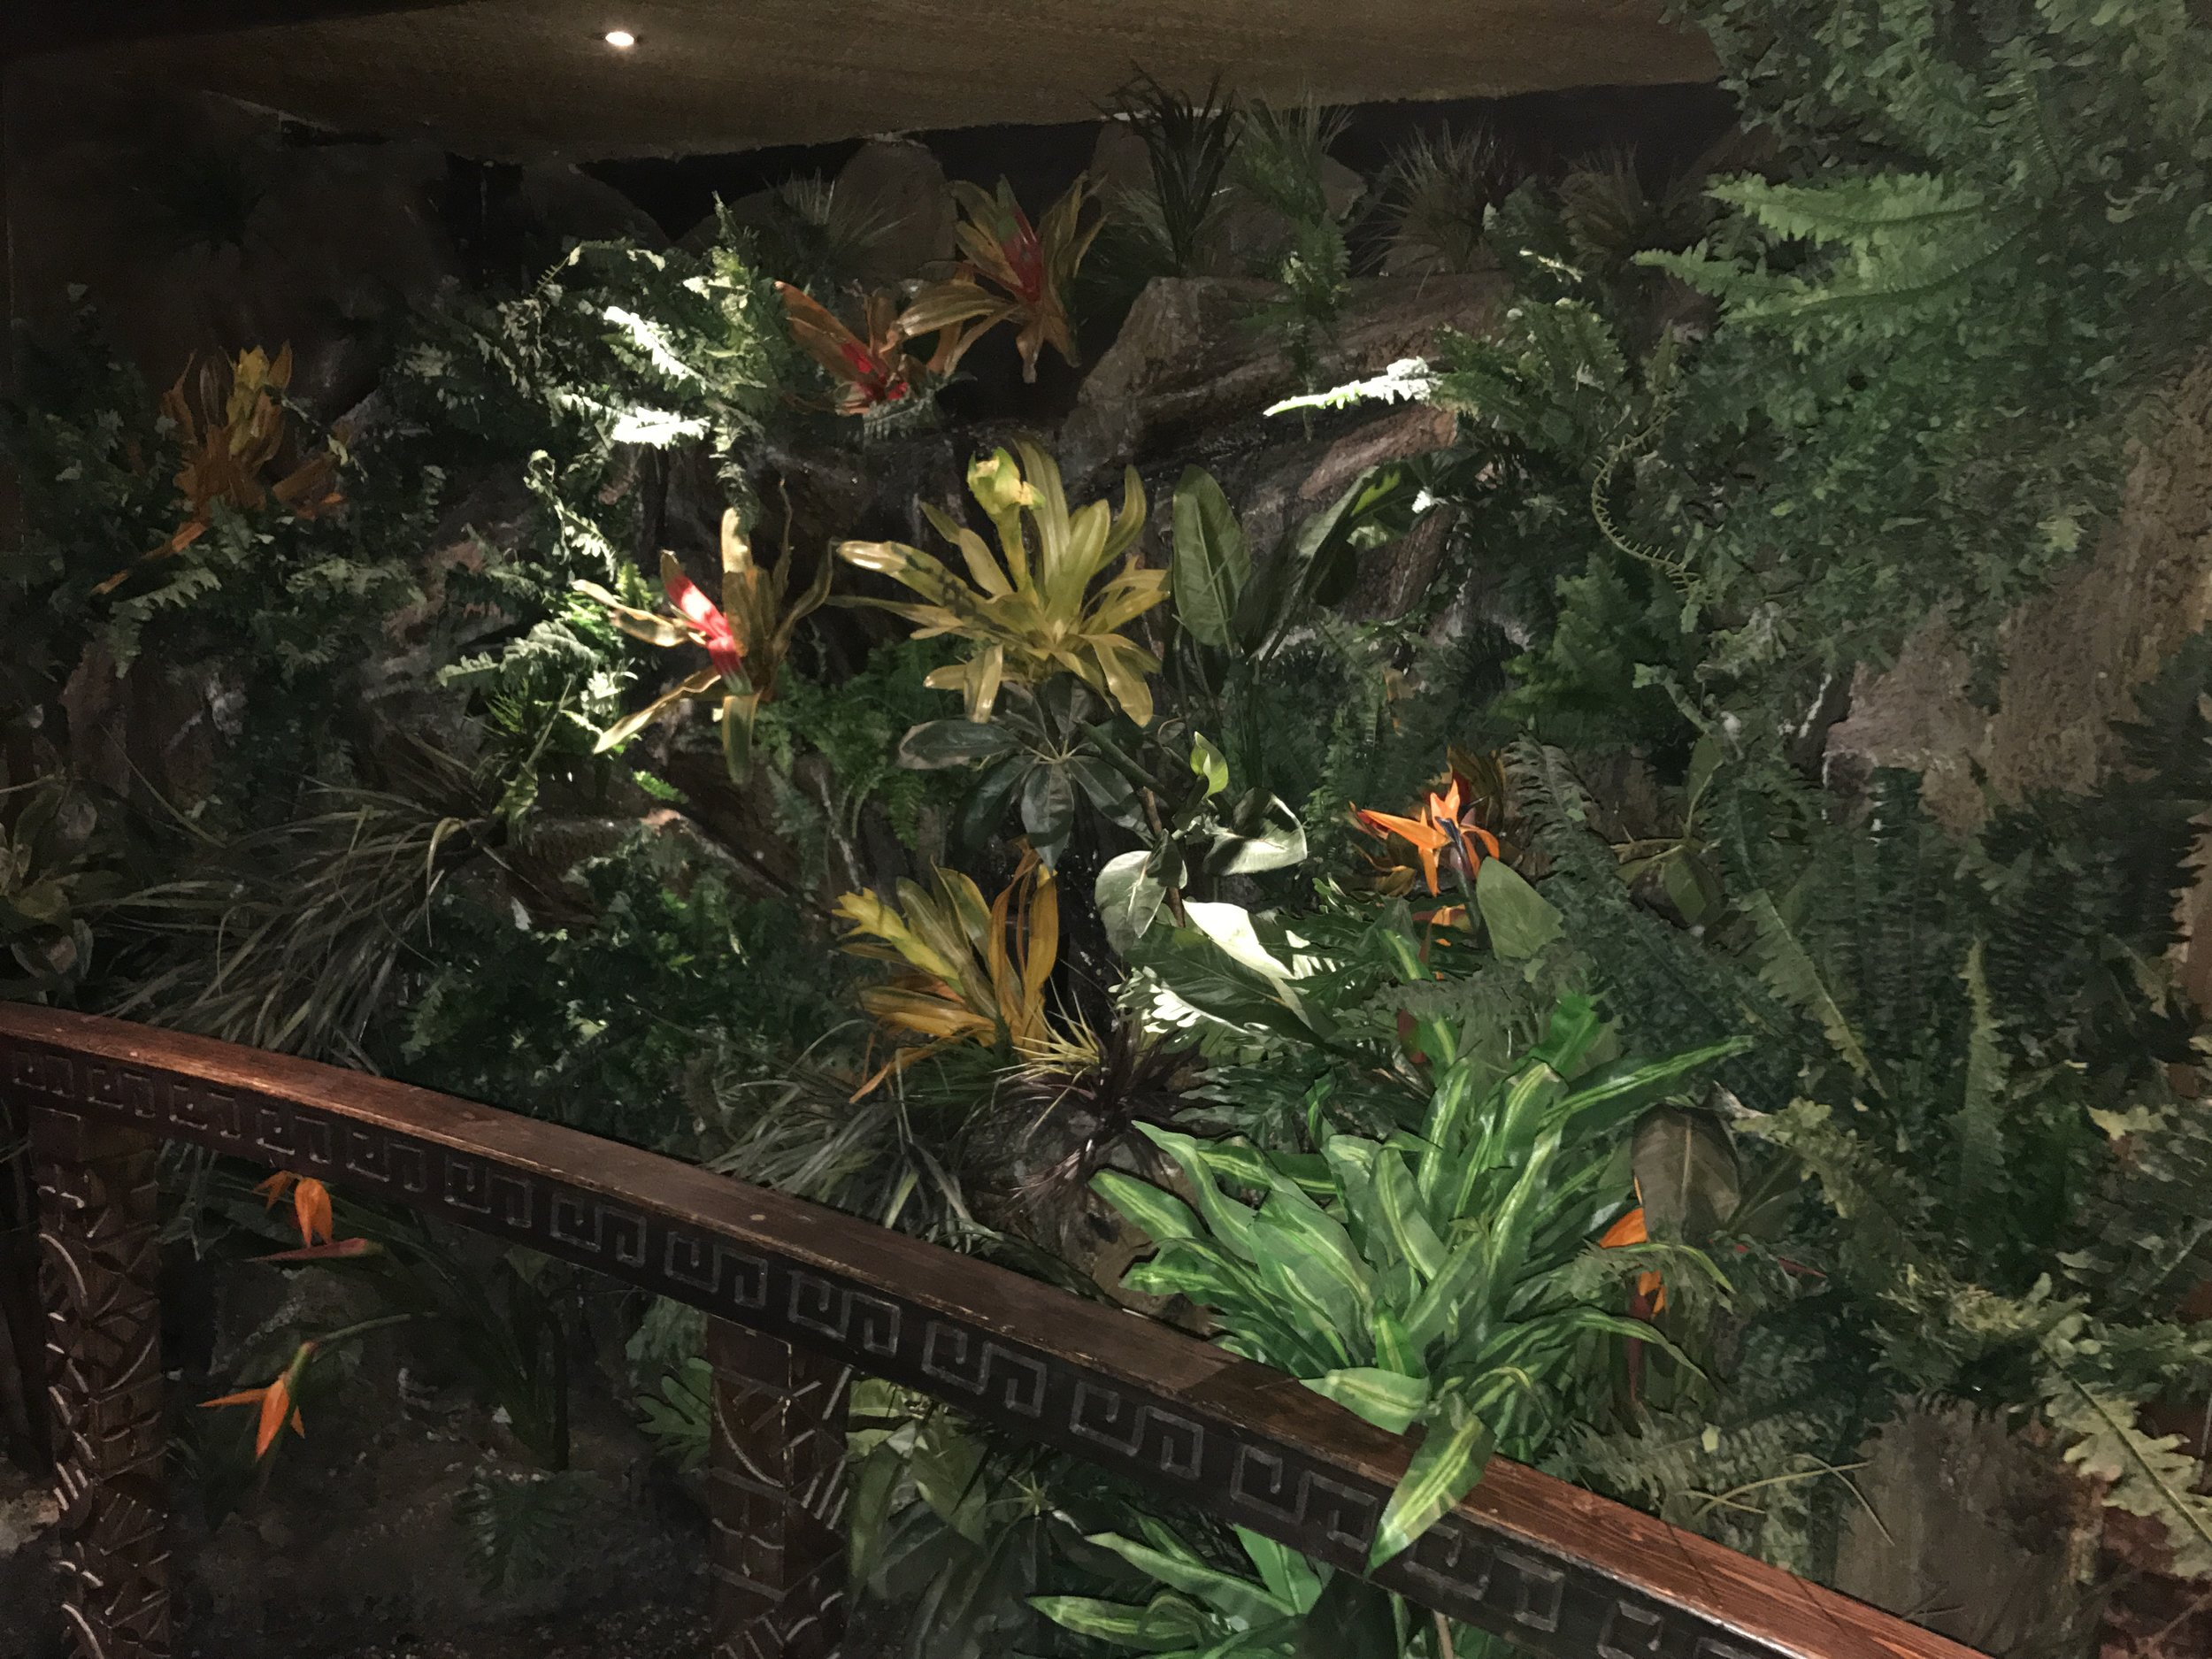 Fire retardant artificial foliage